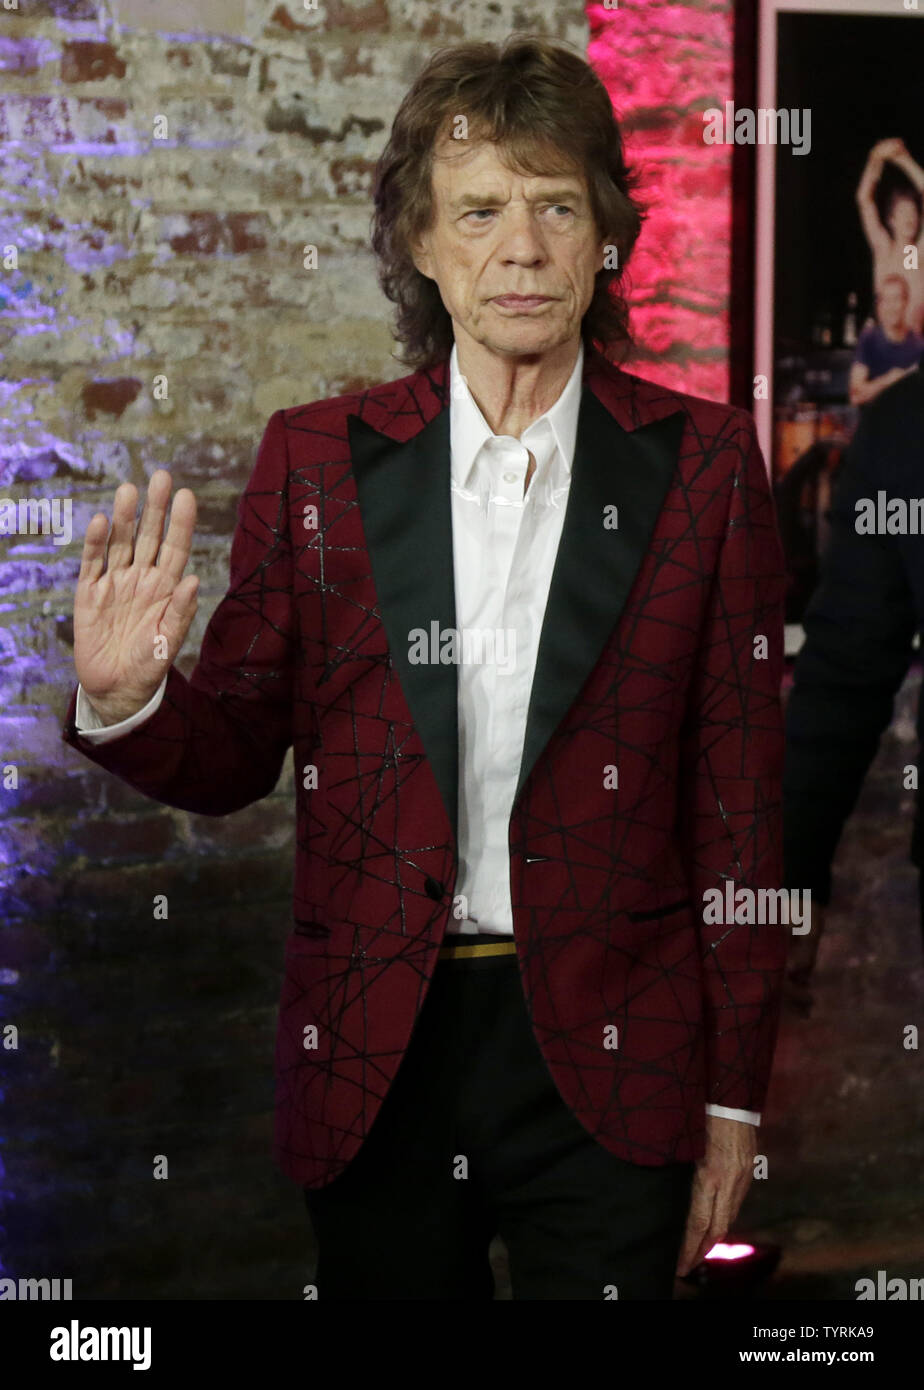 Mick Jagger of The Rolling Stones arrives on the red carpet